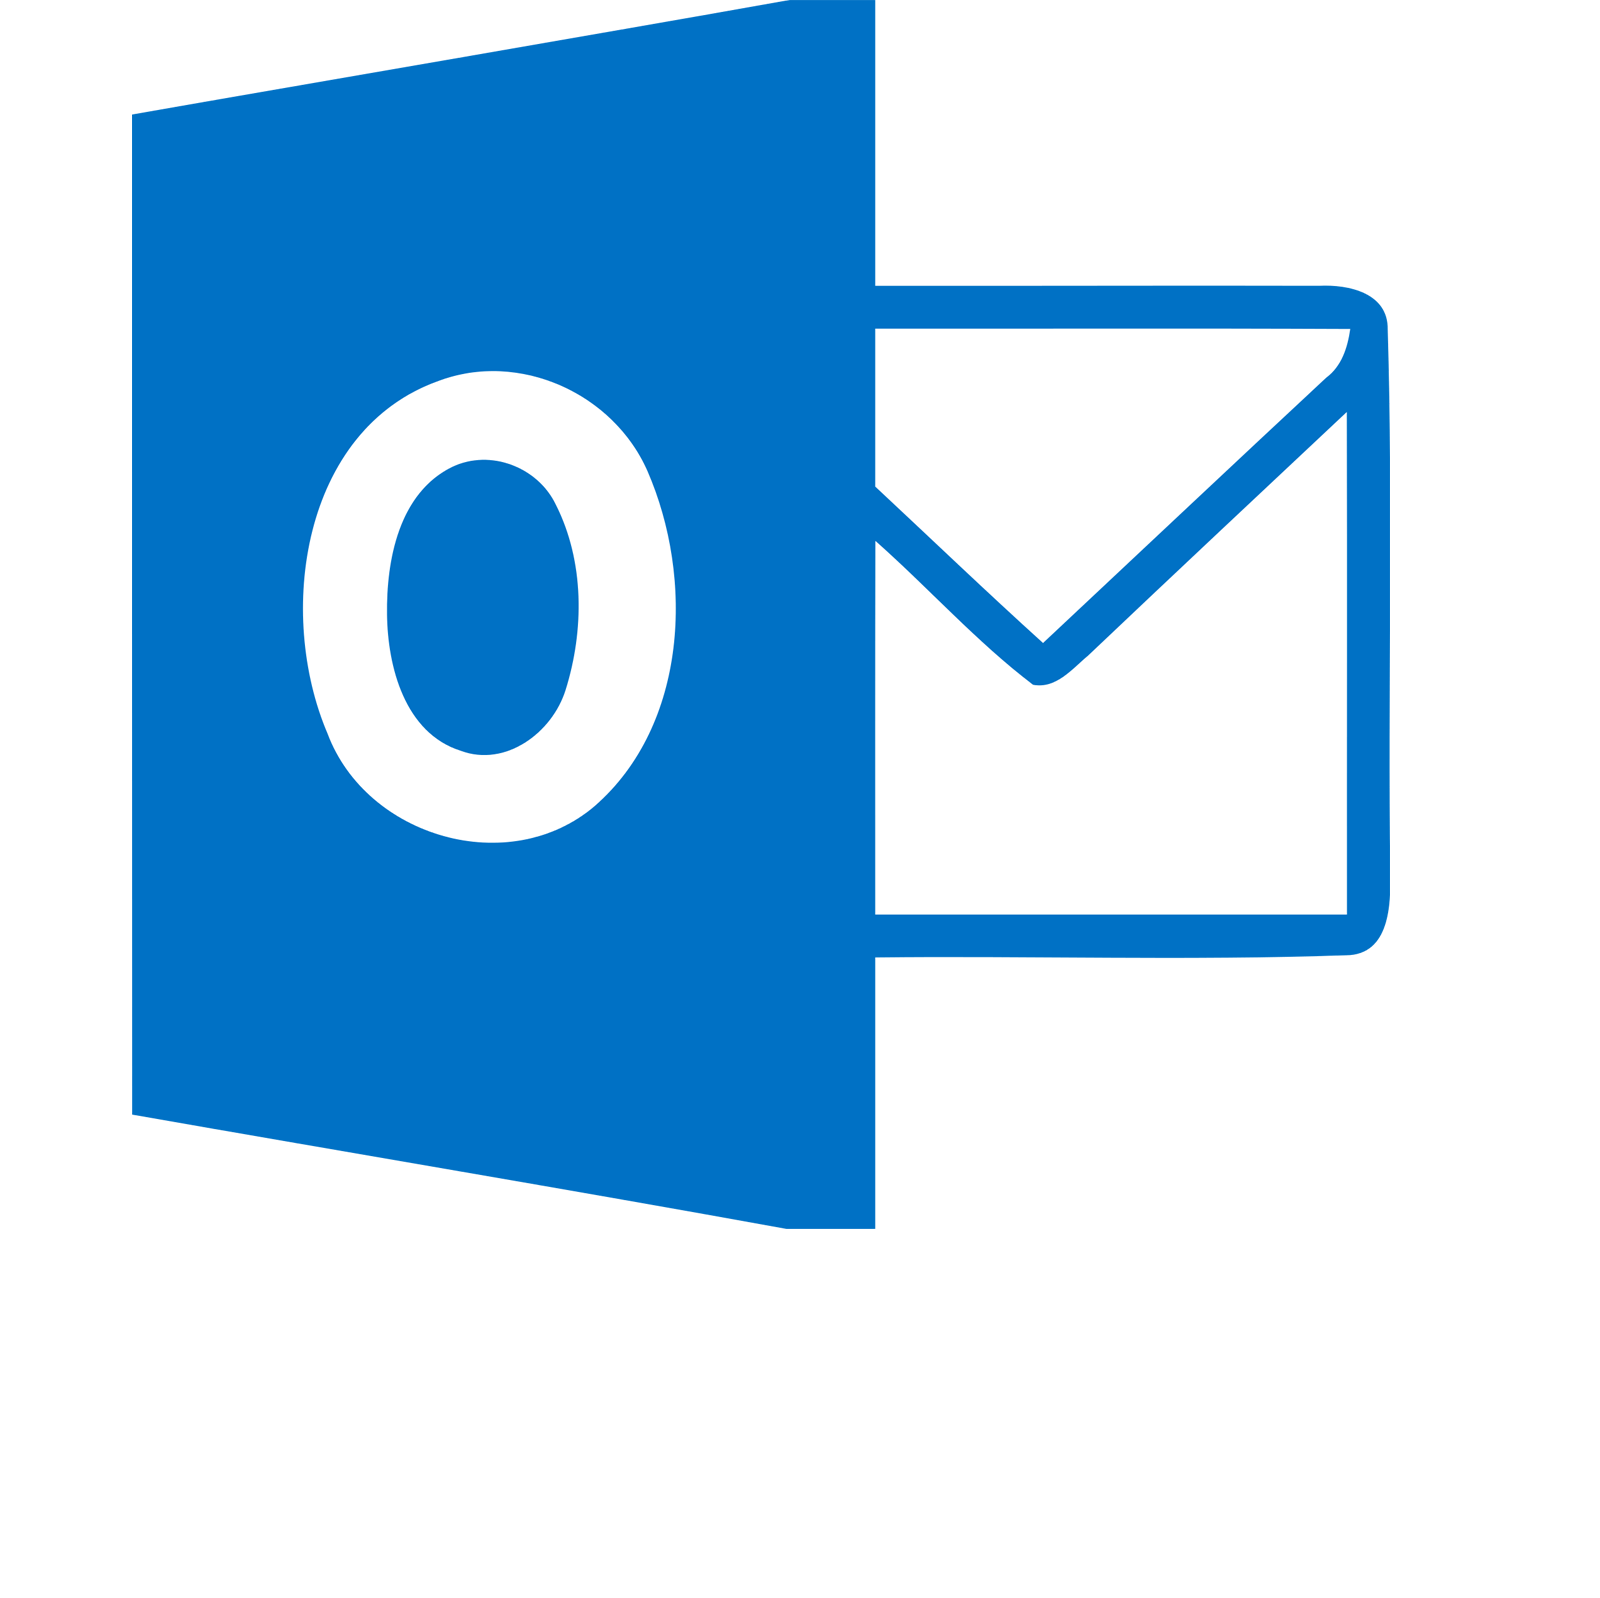 Outlook Transparent Logo - LogoDixOutlook Logo Png